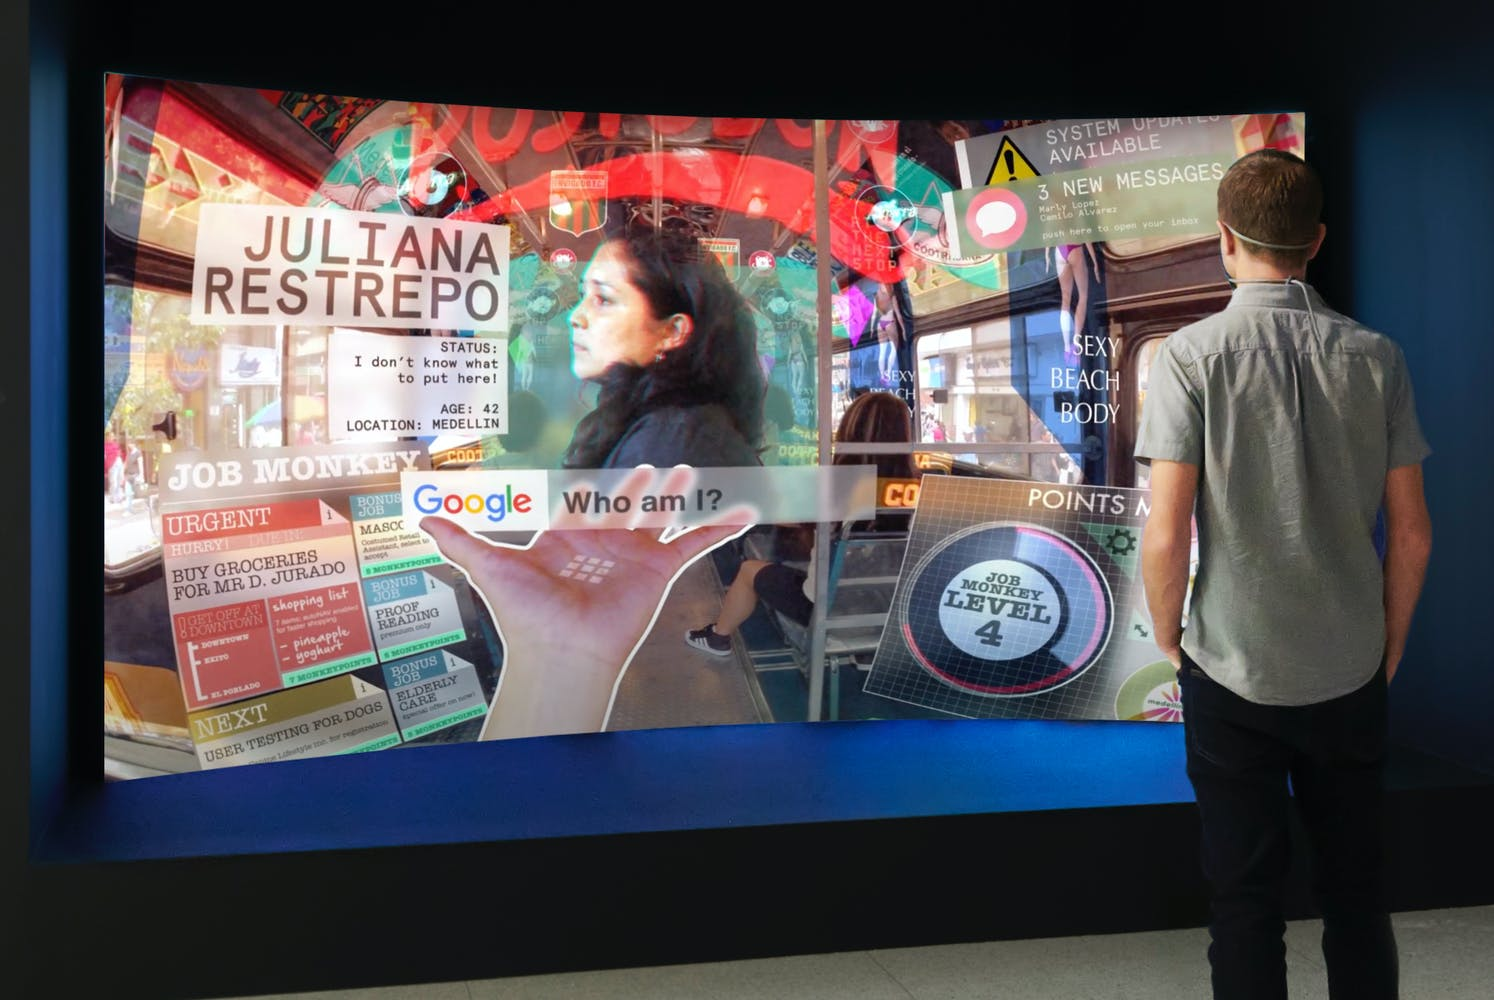 Man standing in front of large rounded projection screen displaying a futuristic user interface